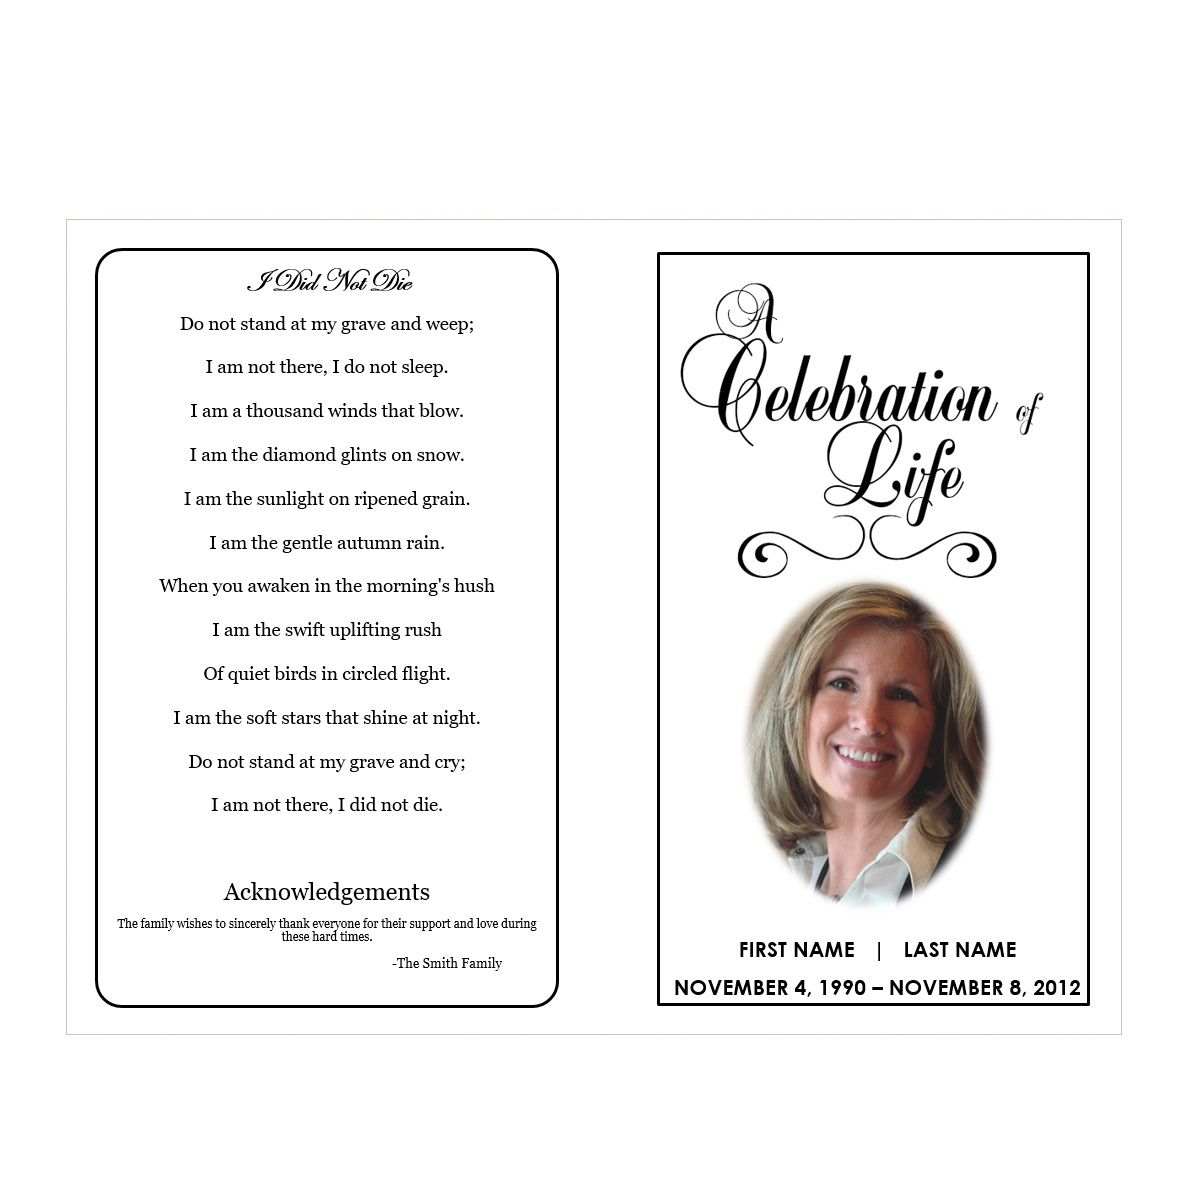 009 Unique Free Celebration Of Life Program Template Download Image Full